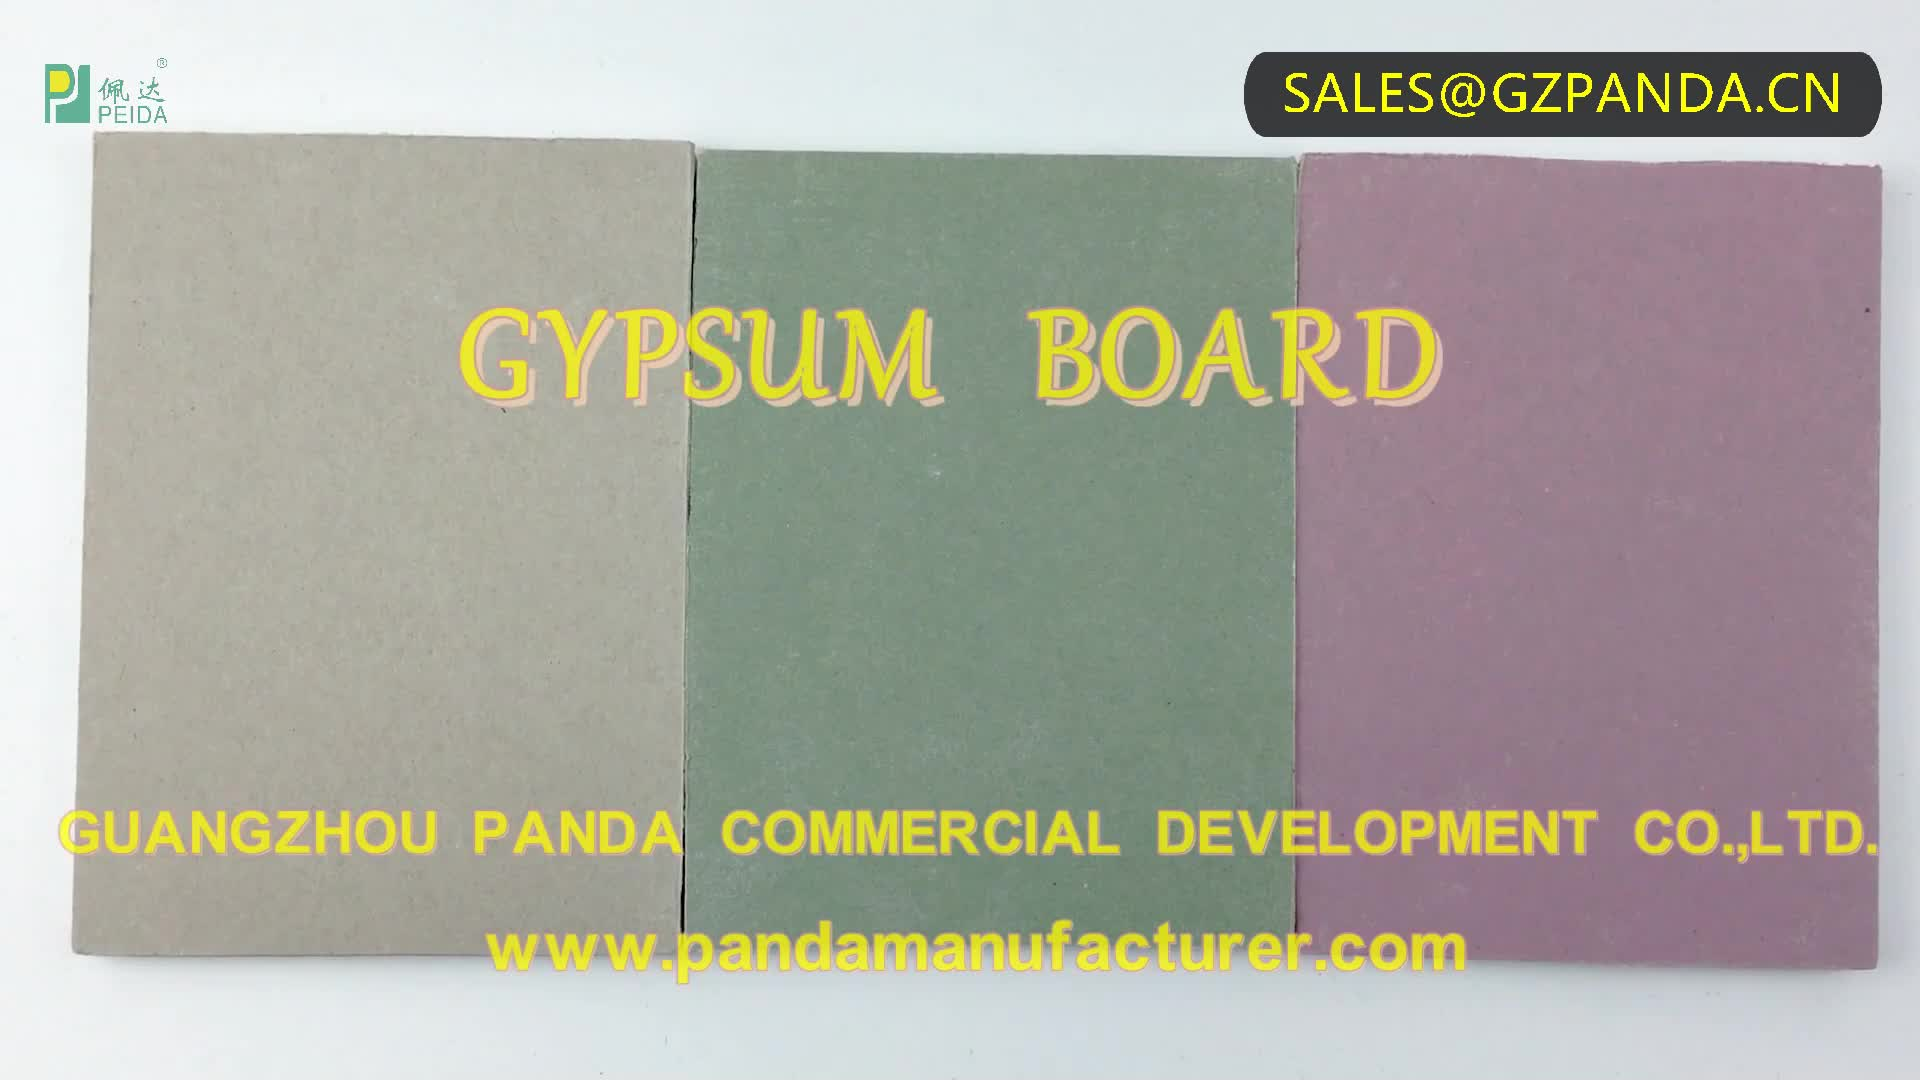 PANDA Manufacture Plaster Board for Drywall System